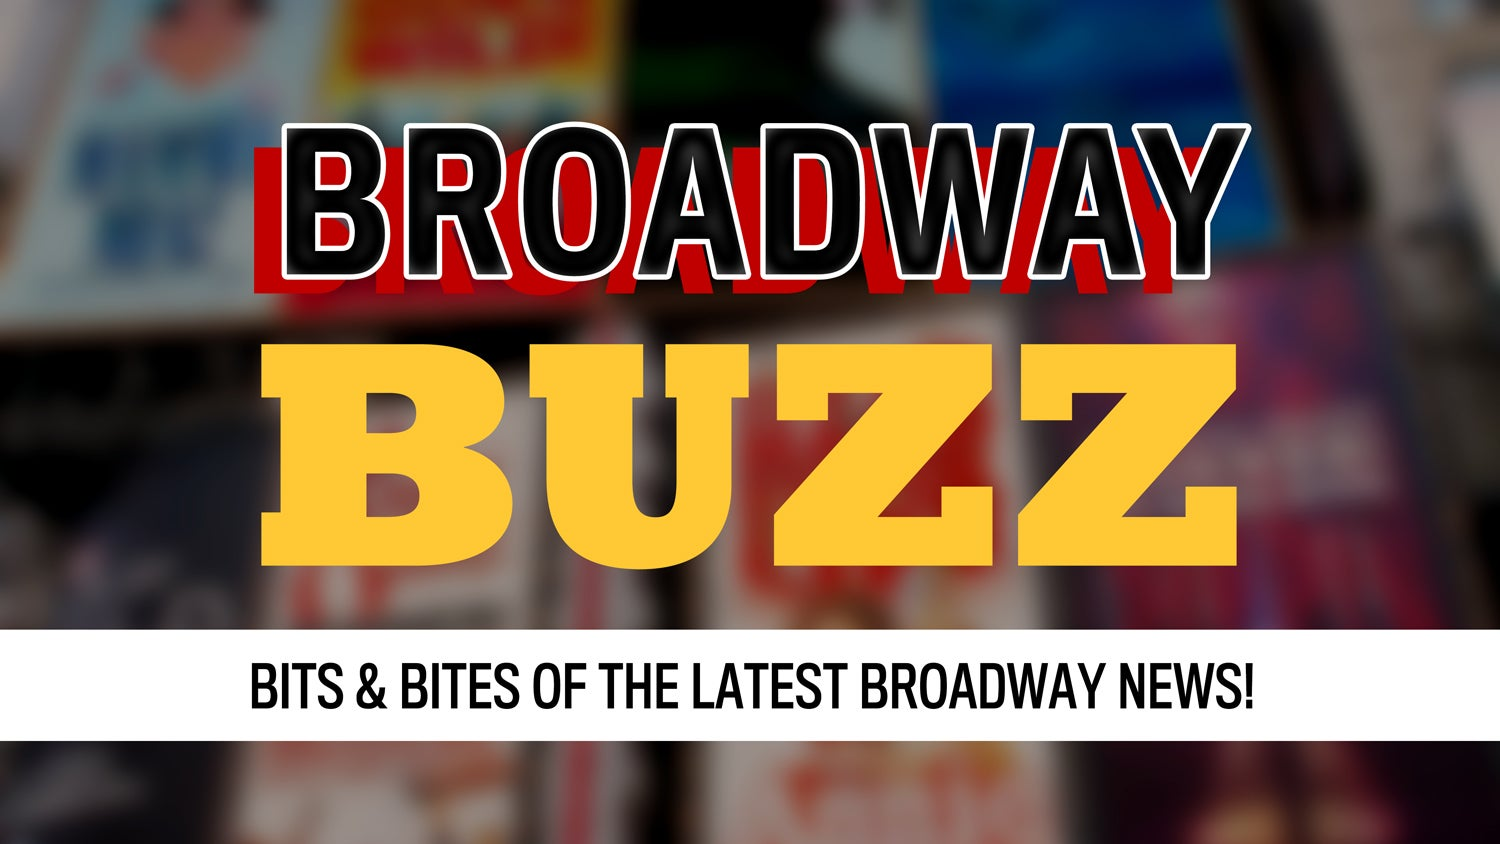 broadwaybuzz1.jpg